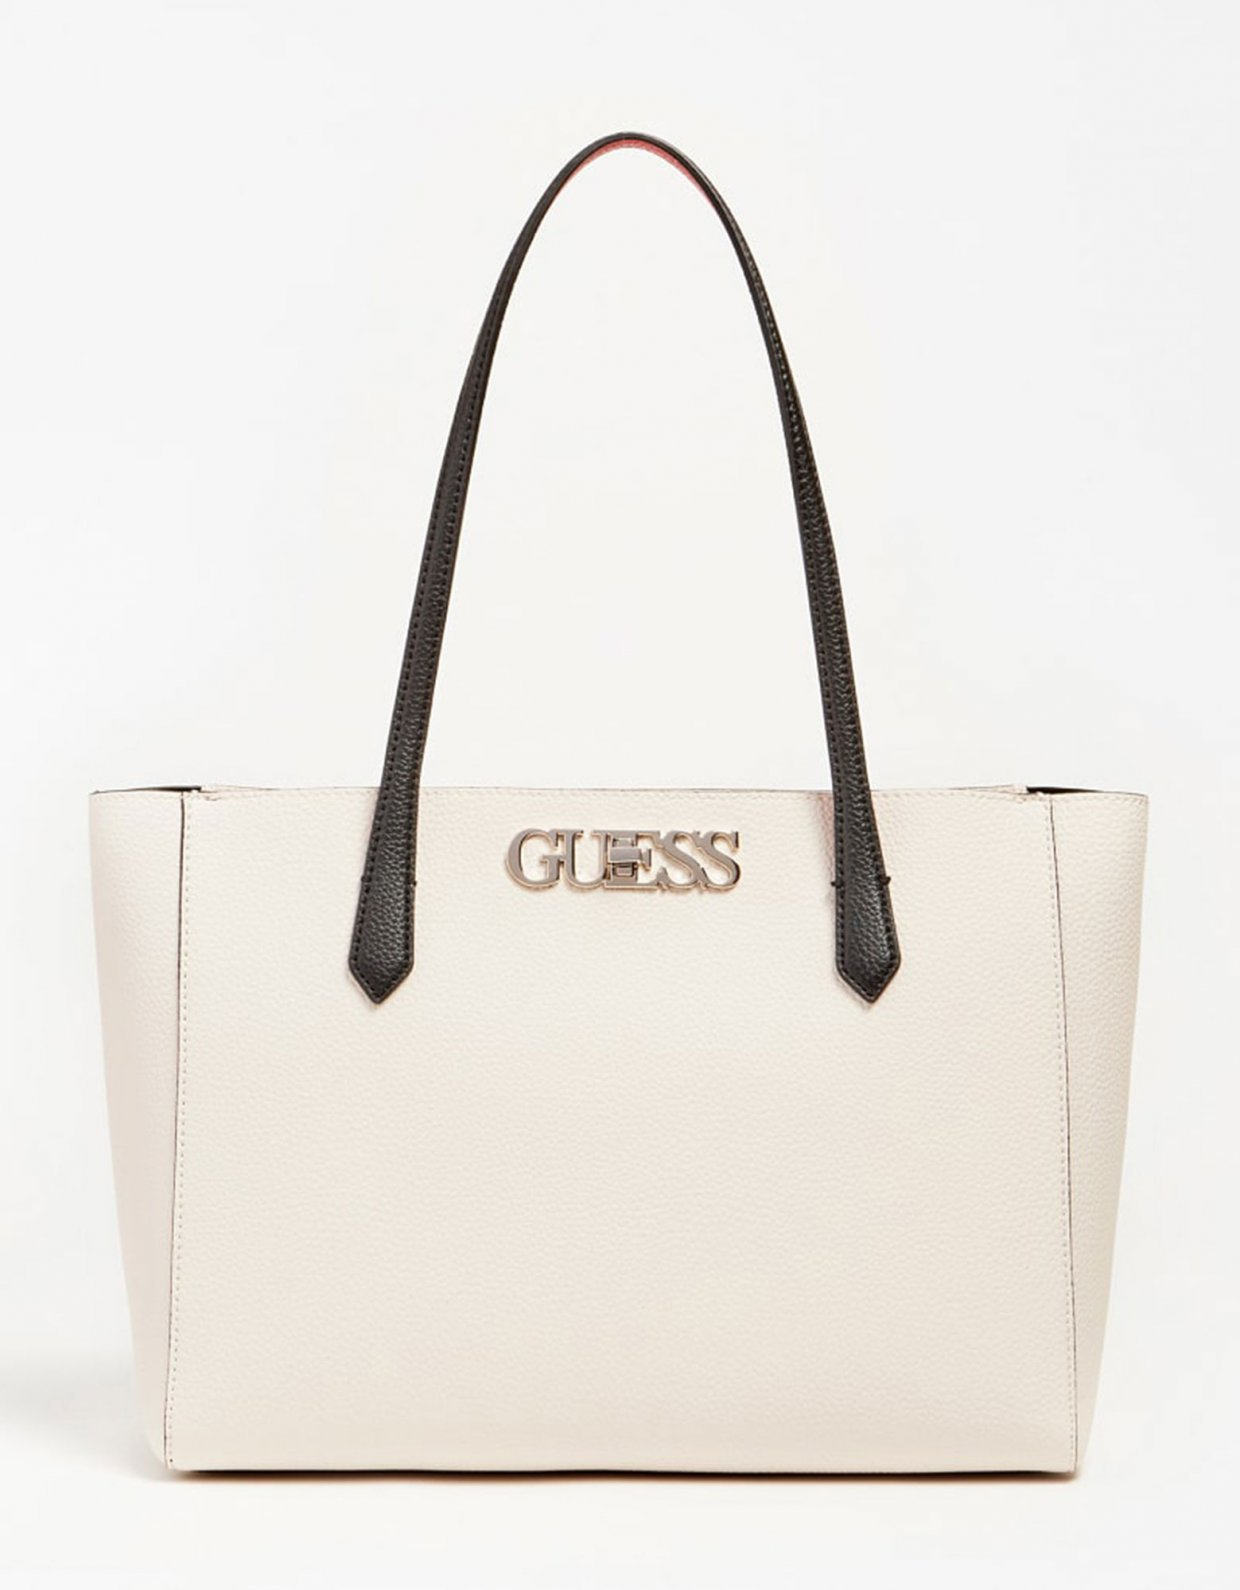 Guess Uptown chic elite tote bag stone multi